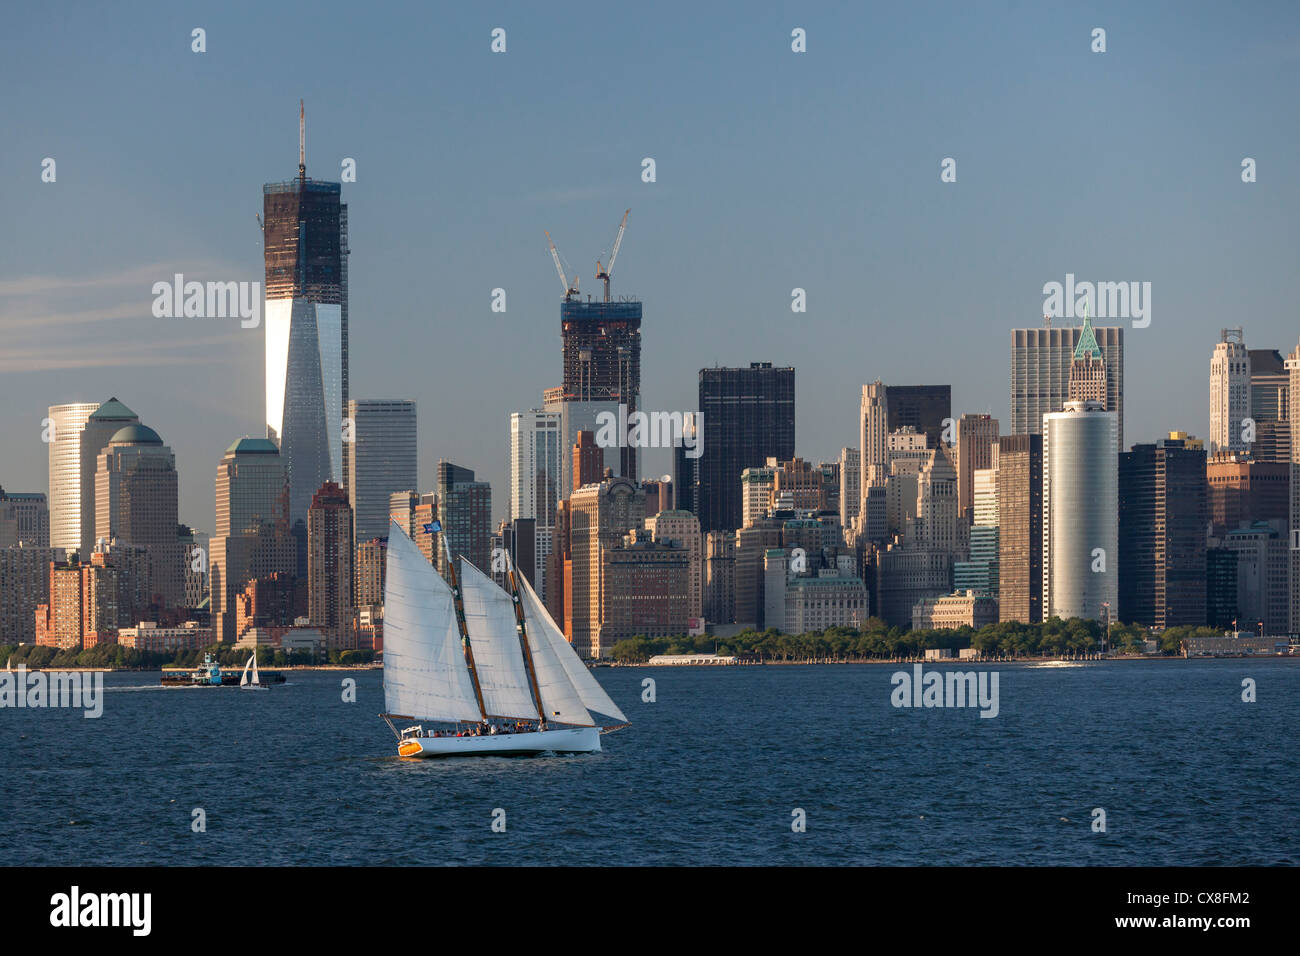 Lower Manhattan Skyline, Sailing Boat, East River, Freedom Tower, New York Stock Photo